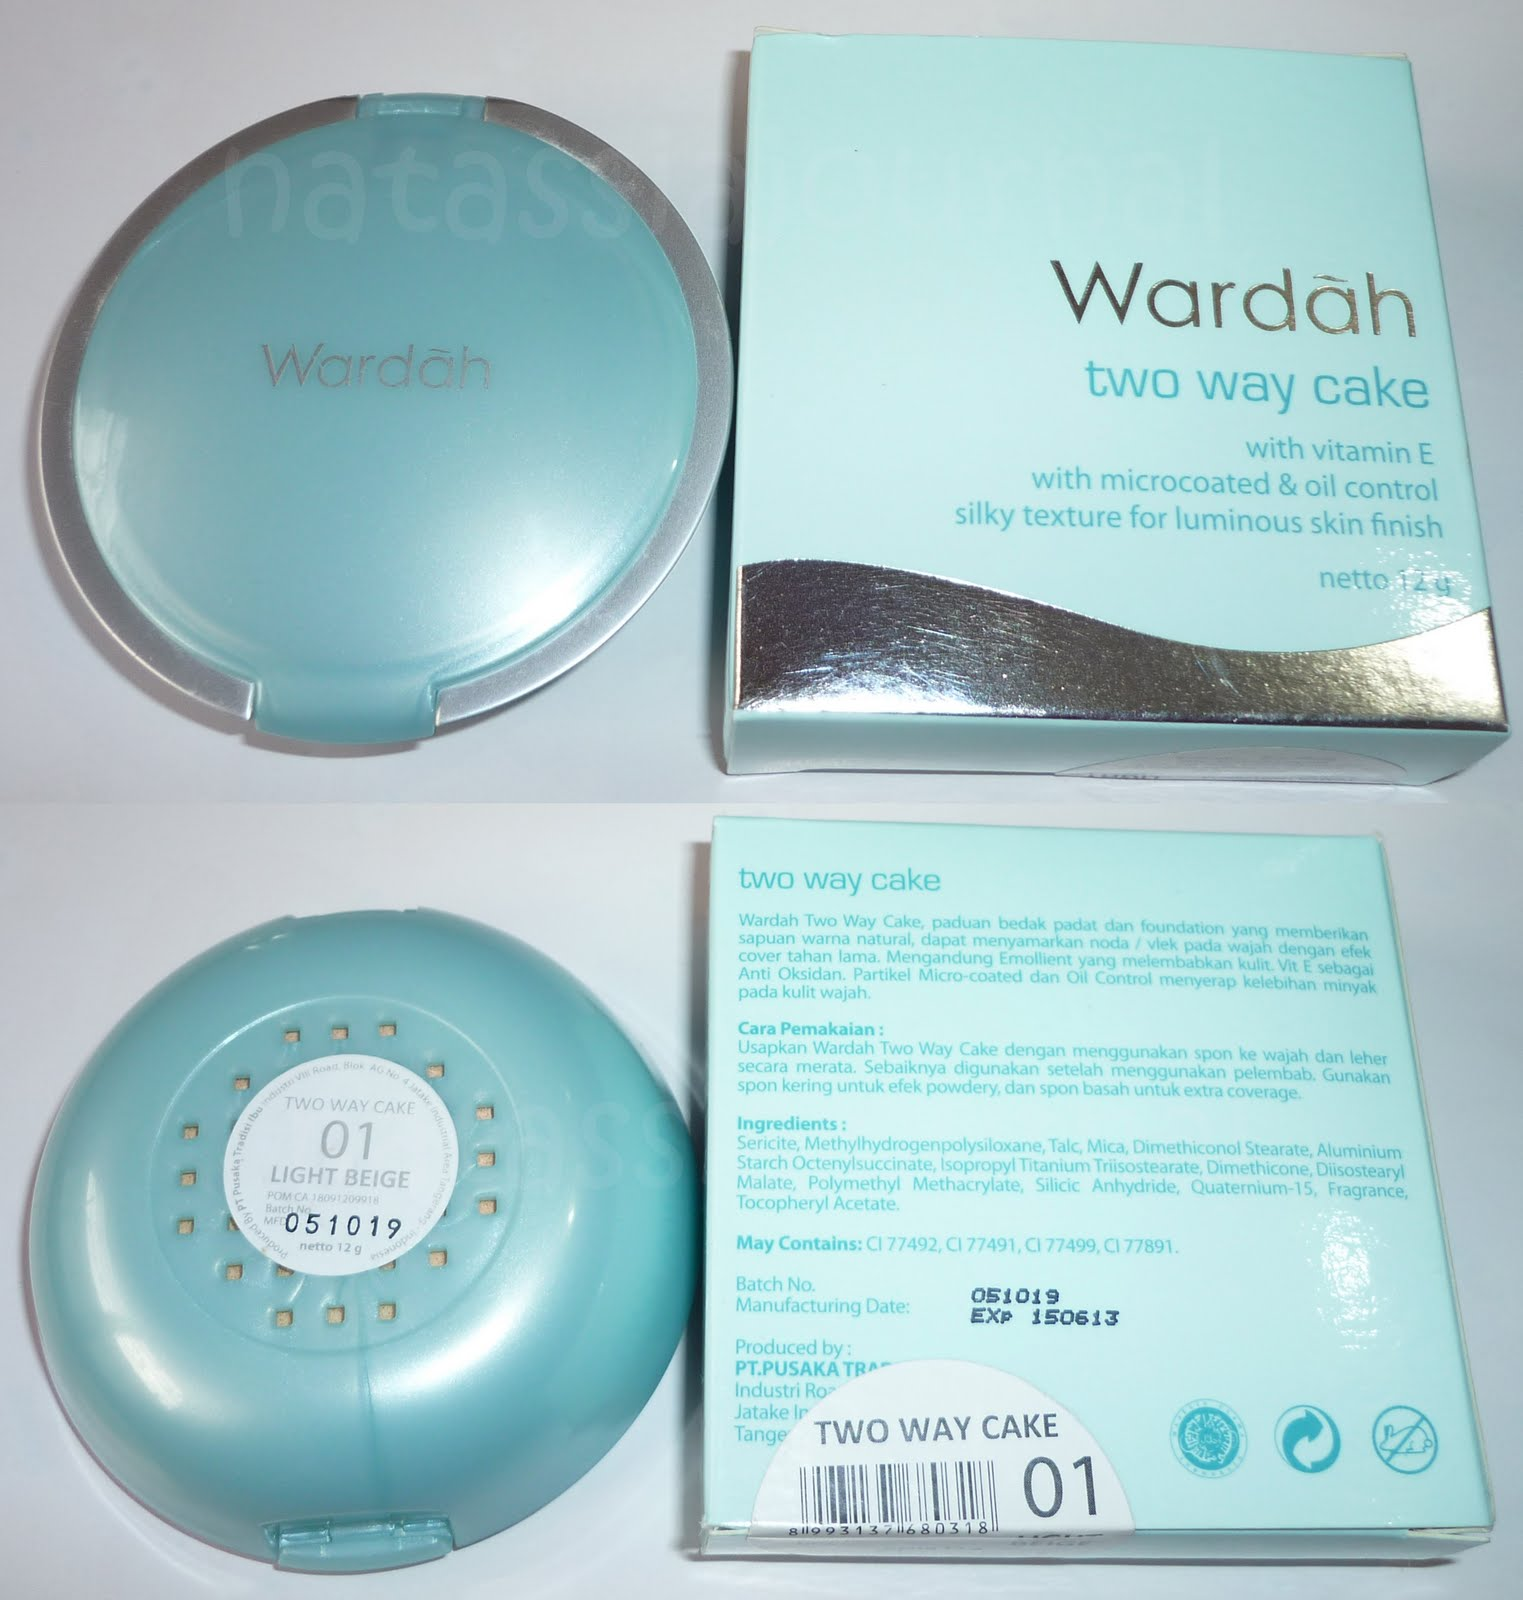 Jual Bedak Wardah Dan Nya Welcome To Lightening Two Way Cake Light Feel Uji Mengandung Merkuri